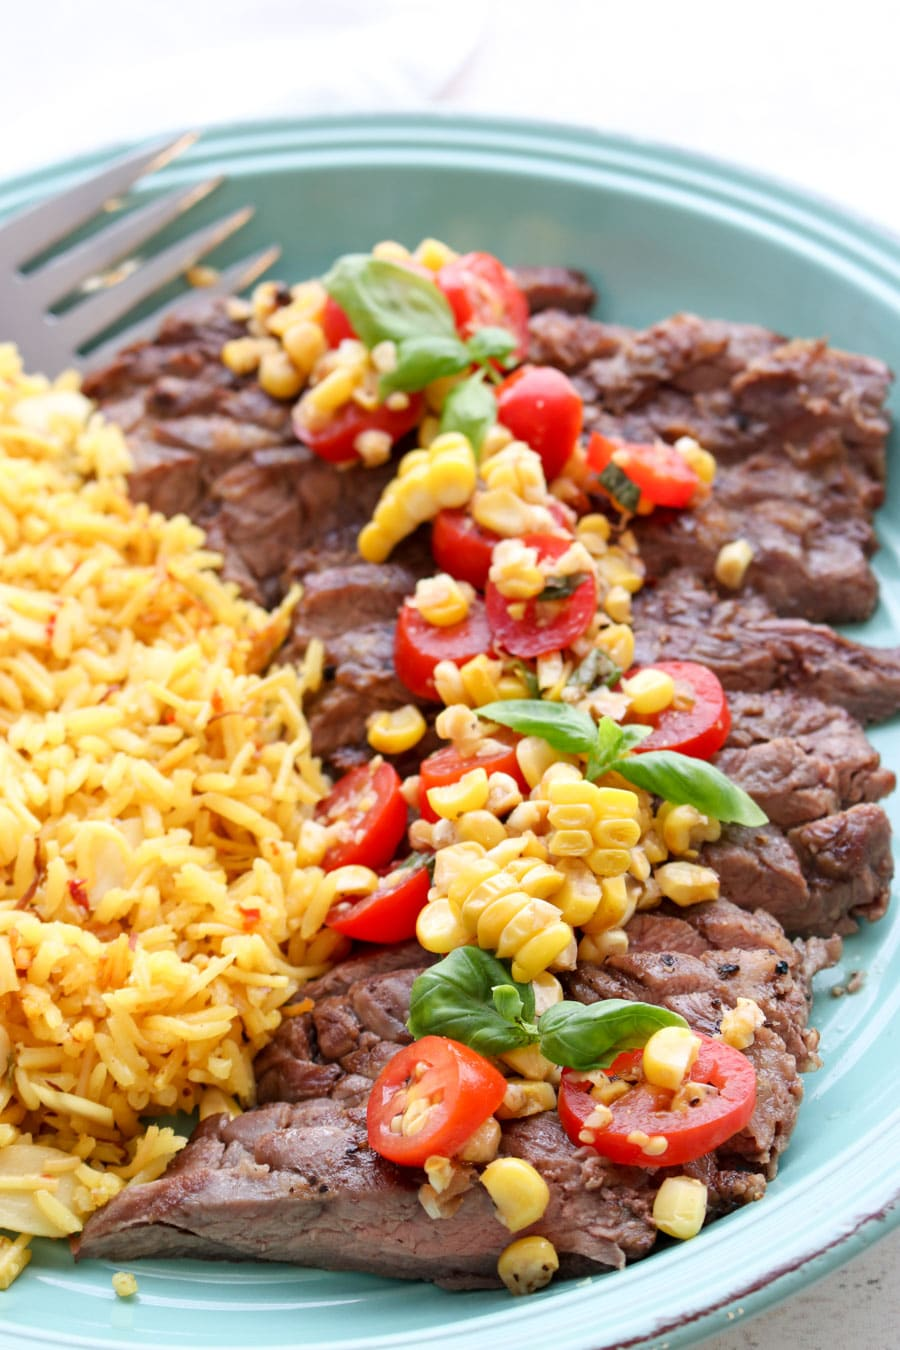 Platter of skirt steak with tomato corn salsa and a side of yellow rice